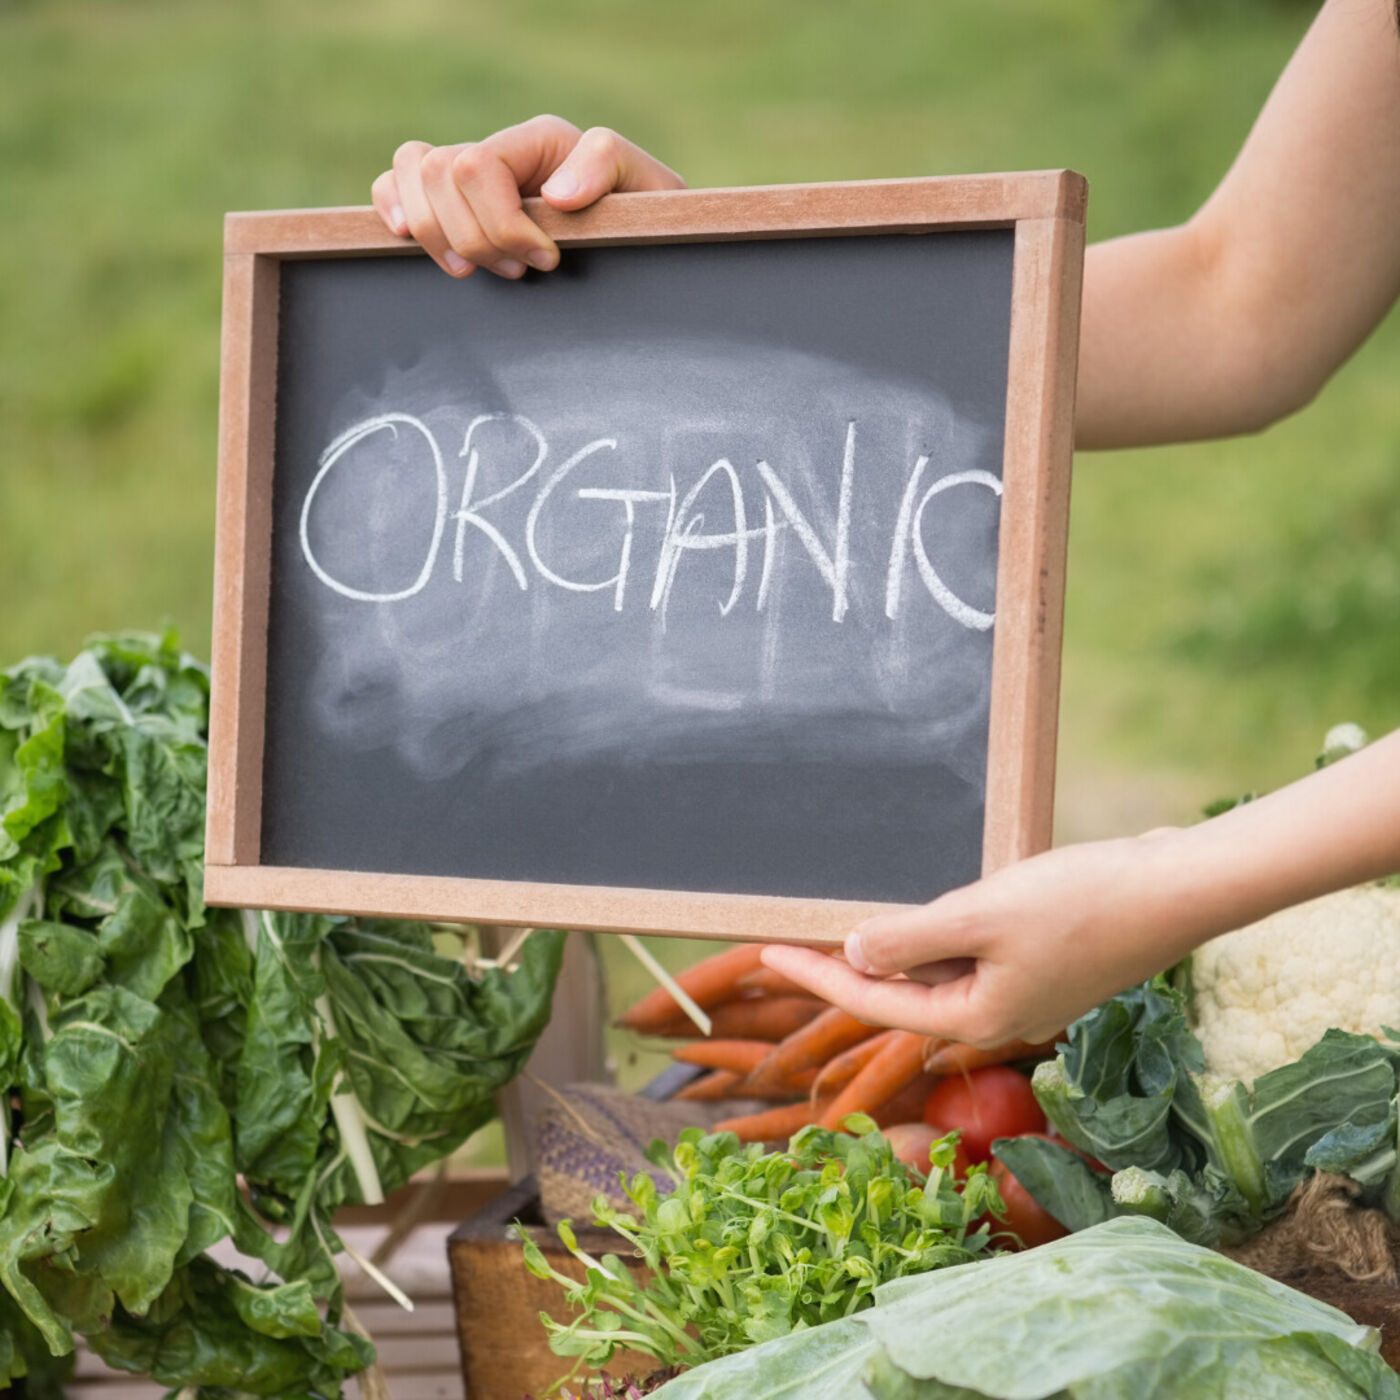 Organic Agriculture and Its Potential to Mitigate Climate Change